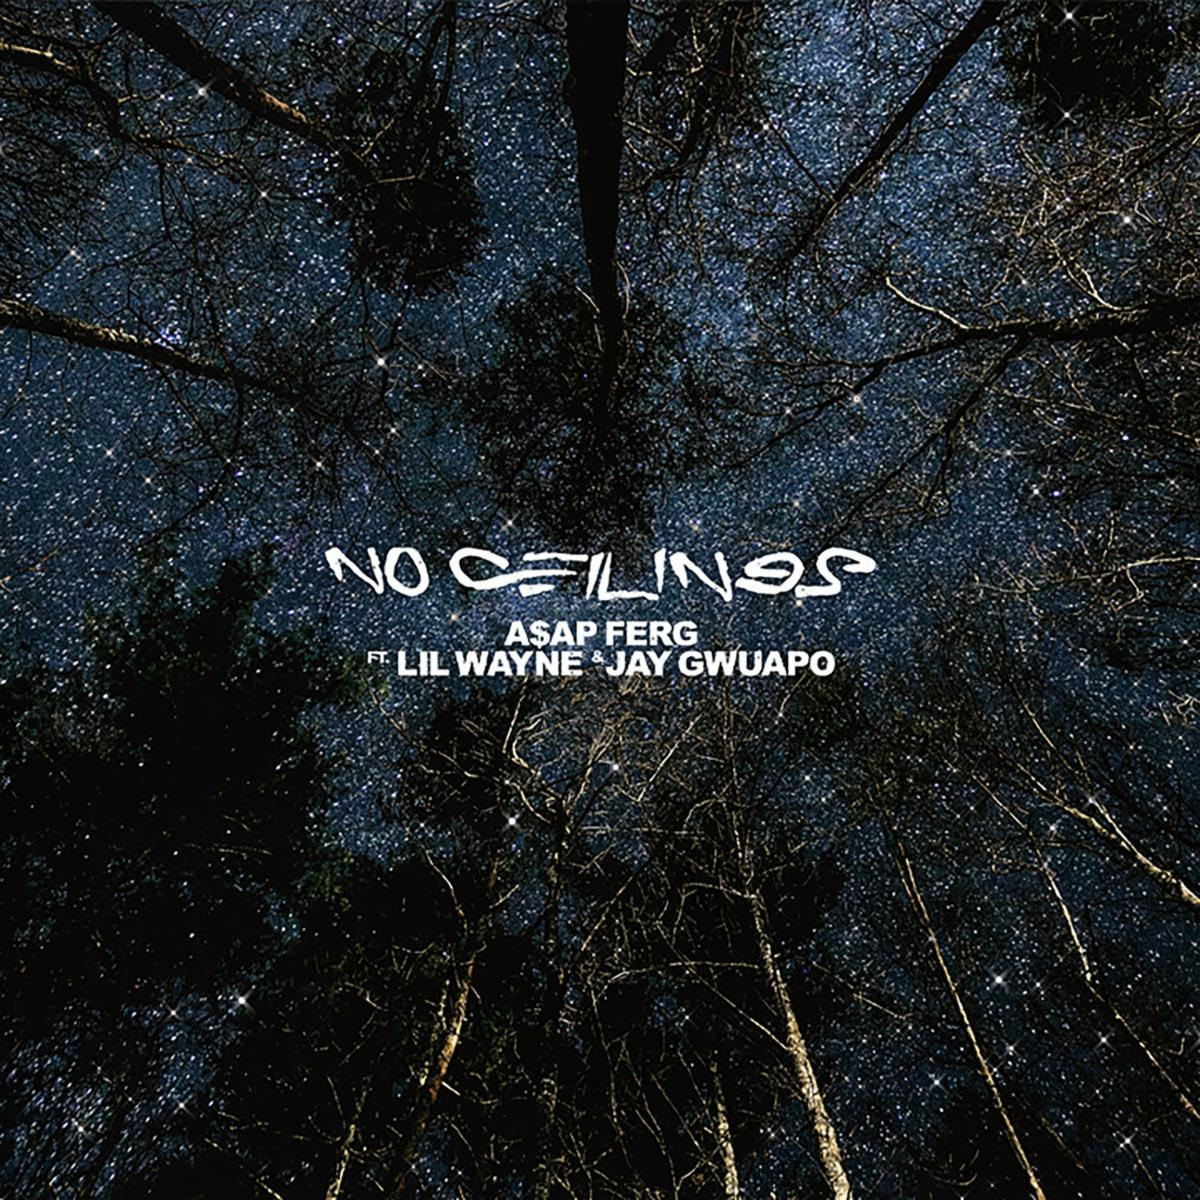 asap ferg no ceilings artwork ASAP Ferg and Lil Wayne Join Forces on New Single No Ceilings: Stream